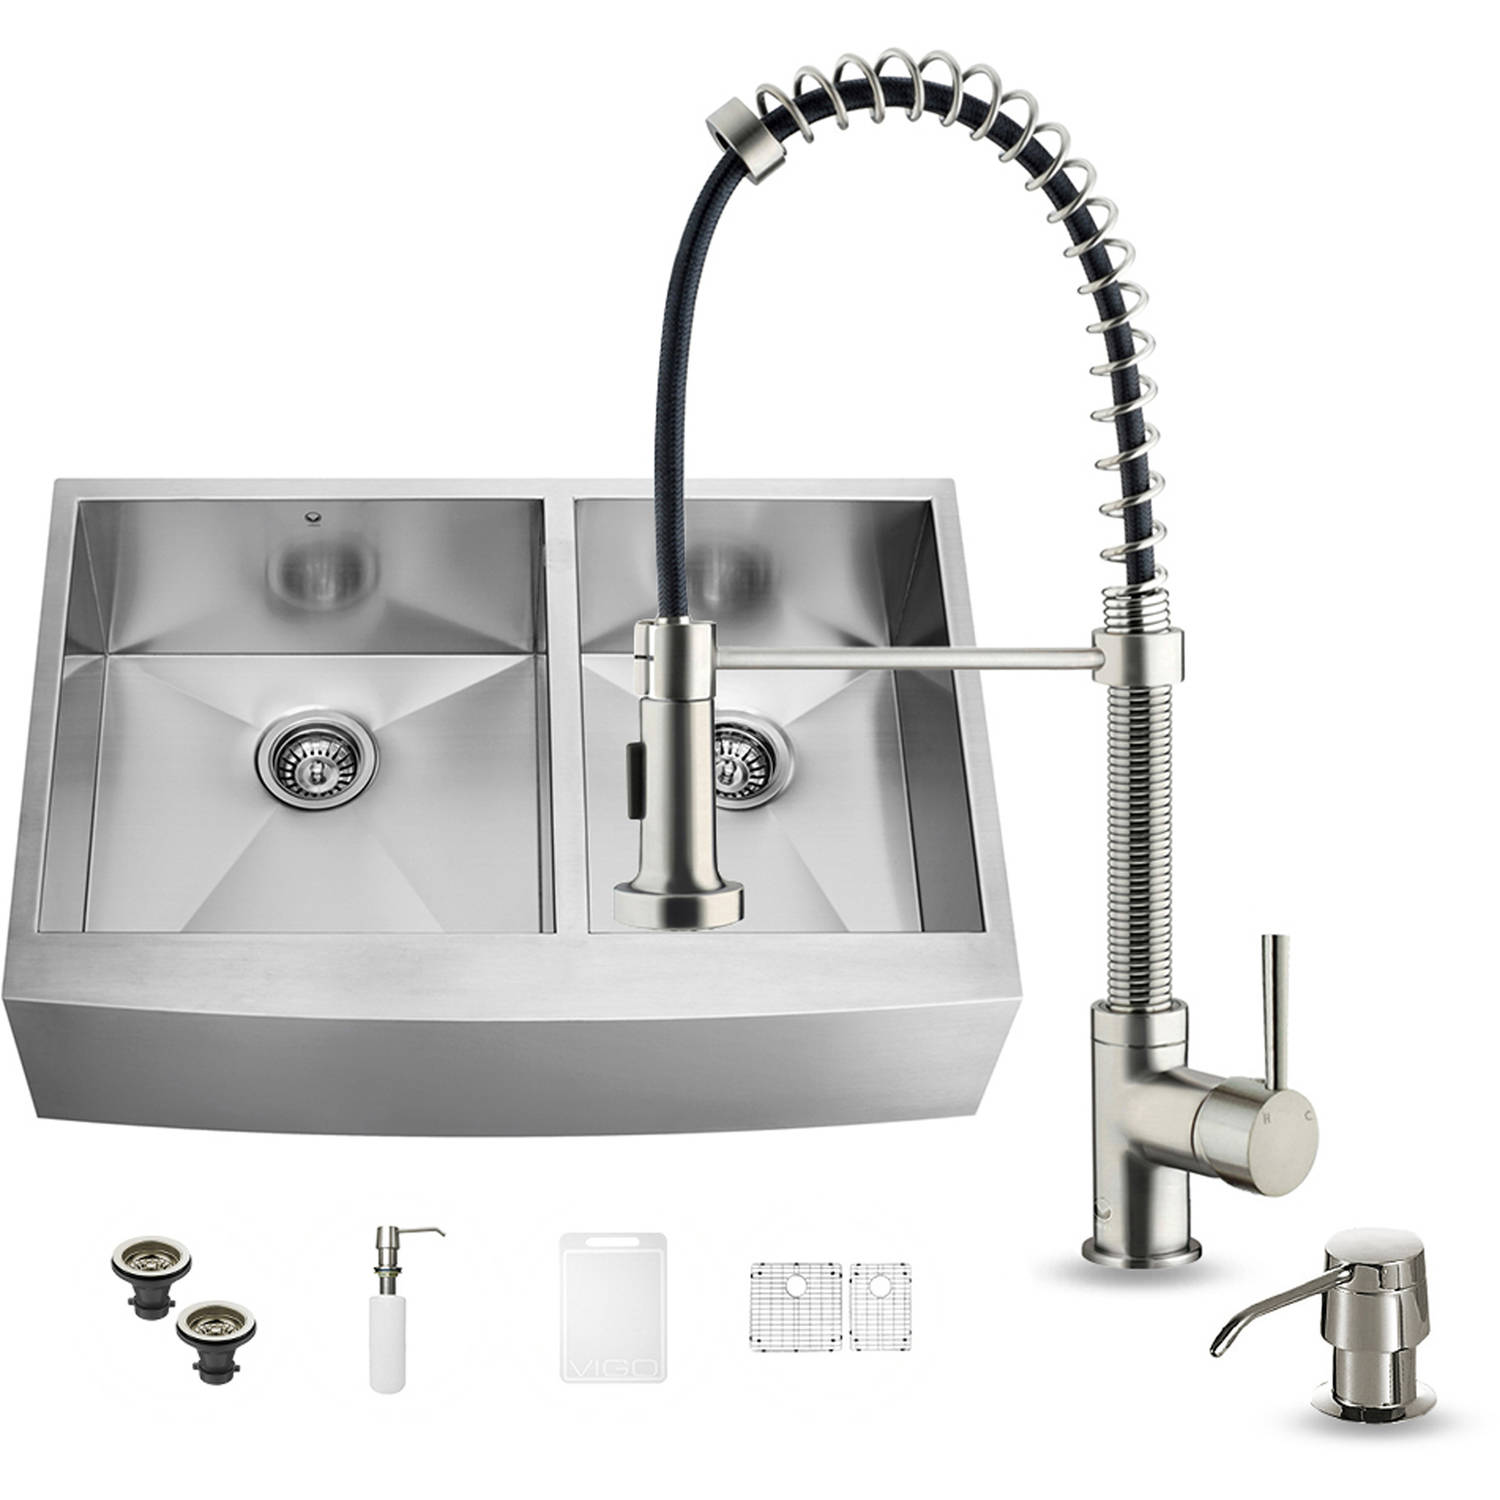 "Vigo All-in-One 36"" Farmhouse Stainless Steel Double Bowl Kitchen Sink and Faucet Set"